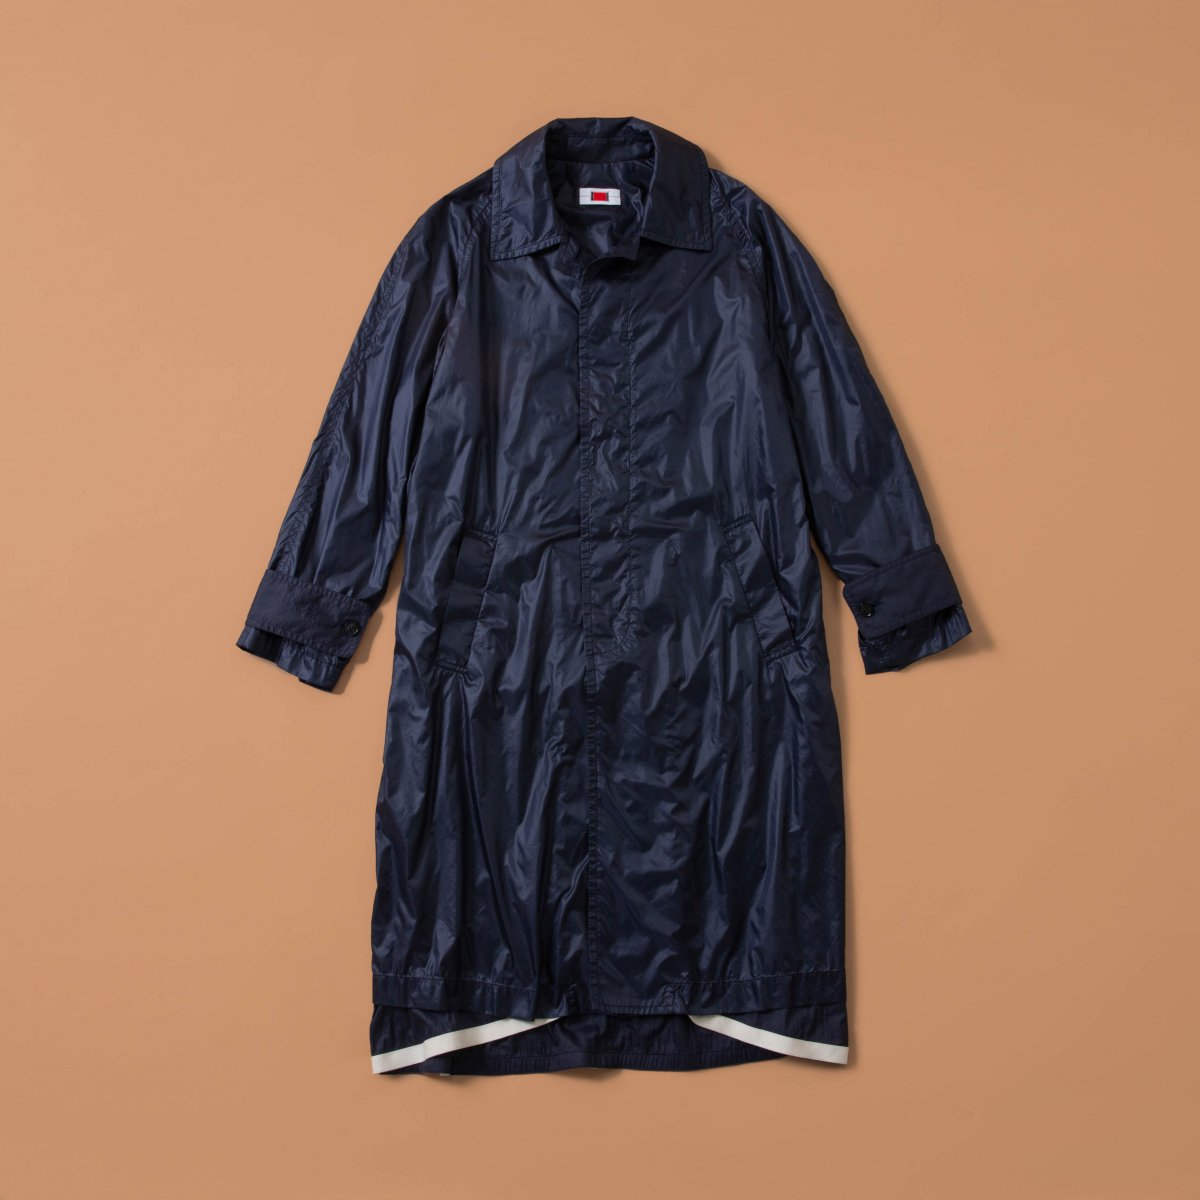 <img class='new_mark_img1' src='https://img.shop-pro.jp/img/new/icons47.gif' style='border:none;display:inline;margin:0px;padding:0px;width:auto;' />REVERSIBLE COAT / NAVY